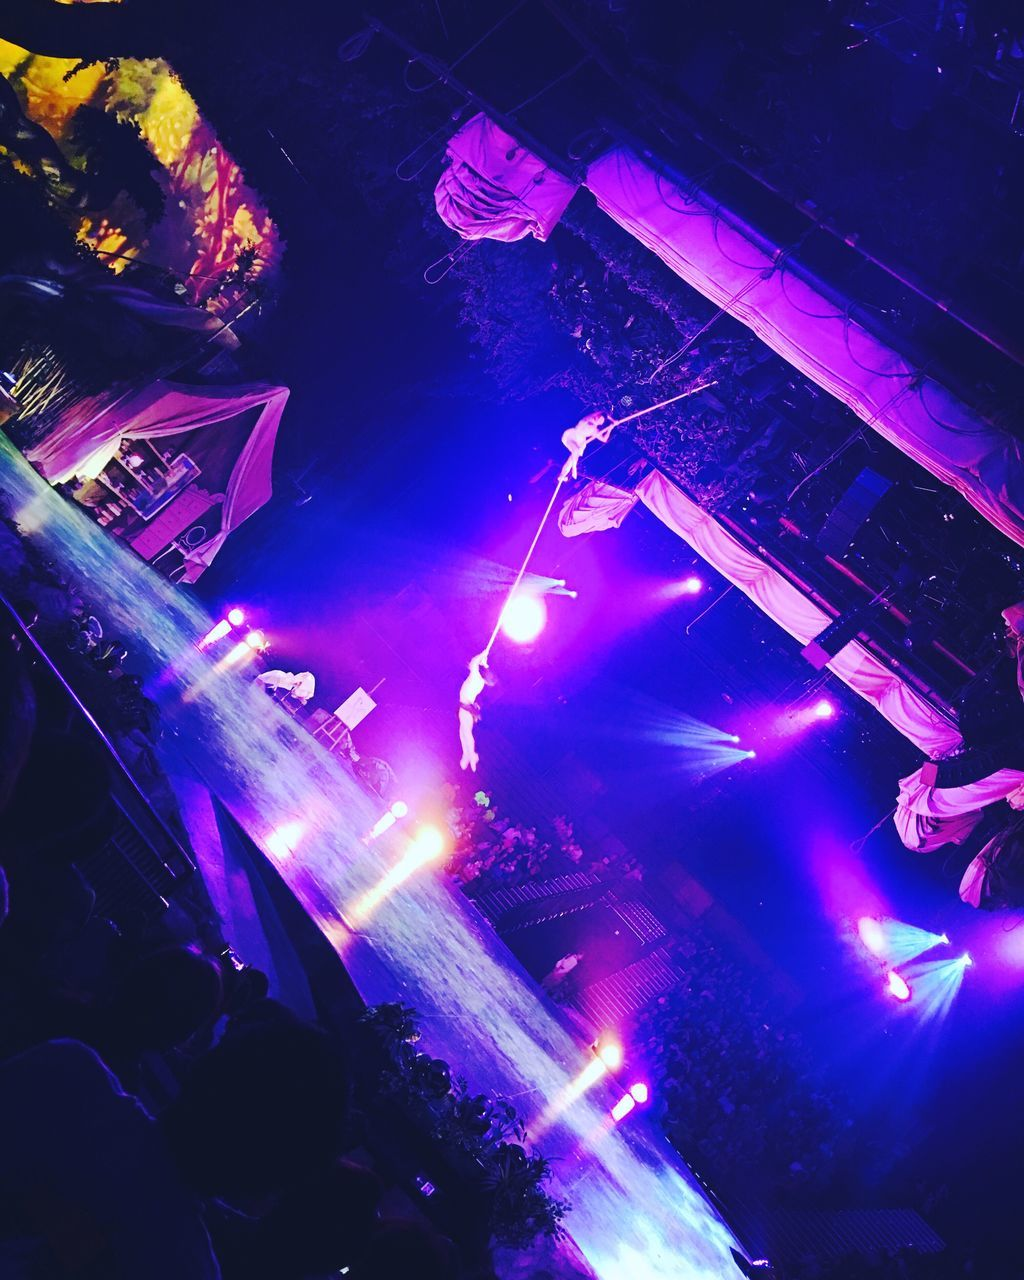 music, illuminated, nightlife, arts culture and entertainment, crowd, large group of people, night, performance, event, indoors, enjoyment, audience, real people, leisure activity, men, nightclub, popular music concert, stage light, youth culture, rock music, disco lights, people